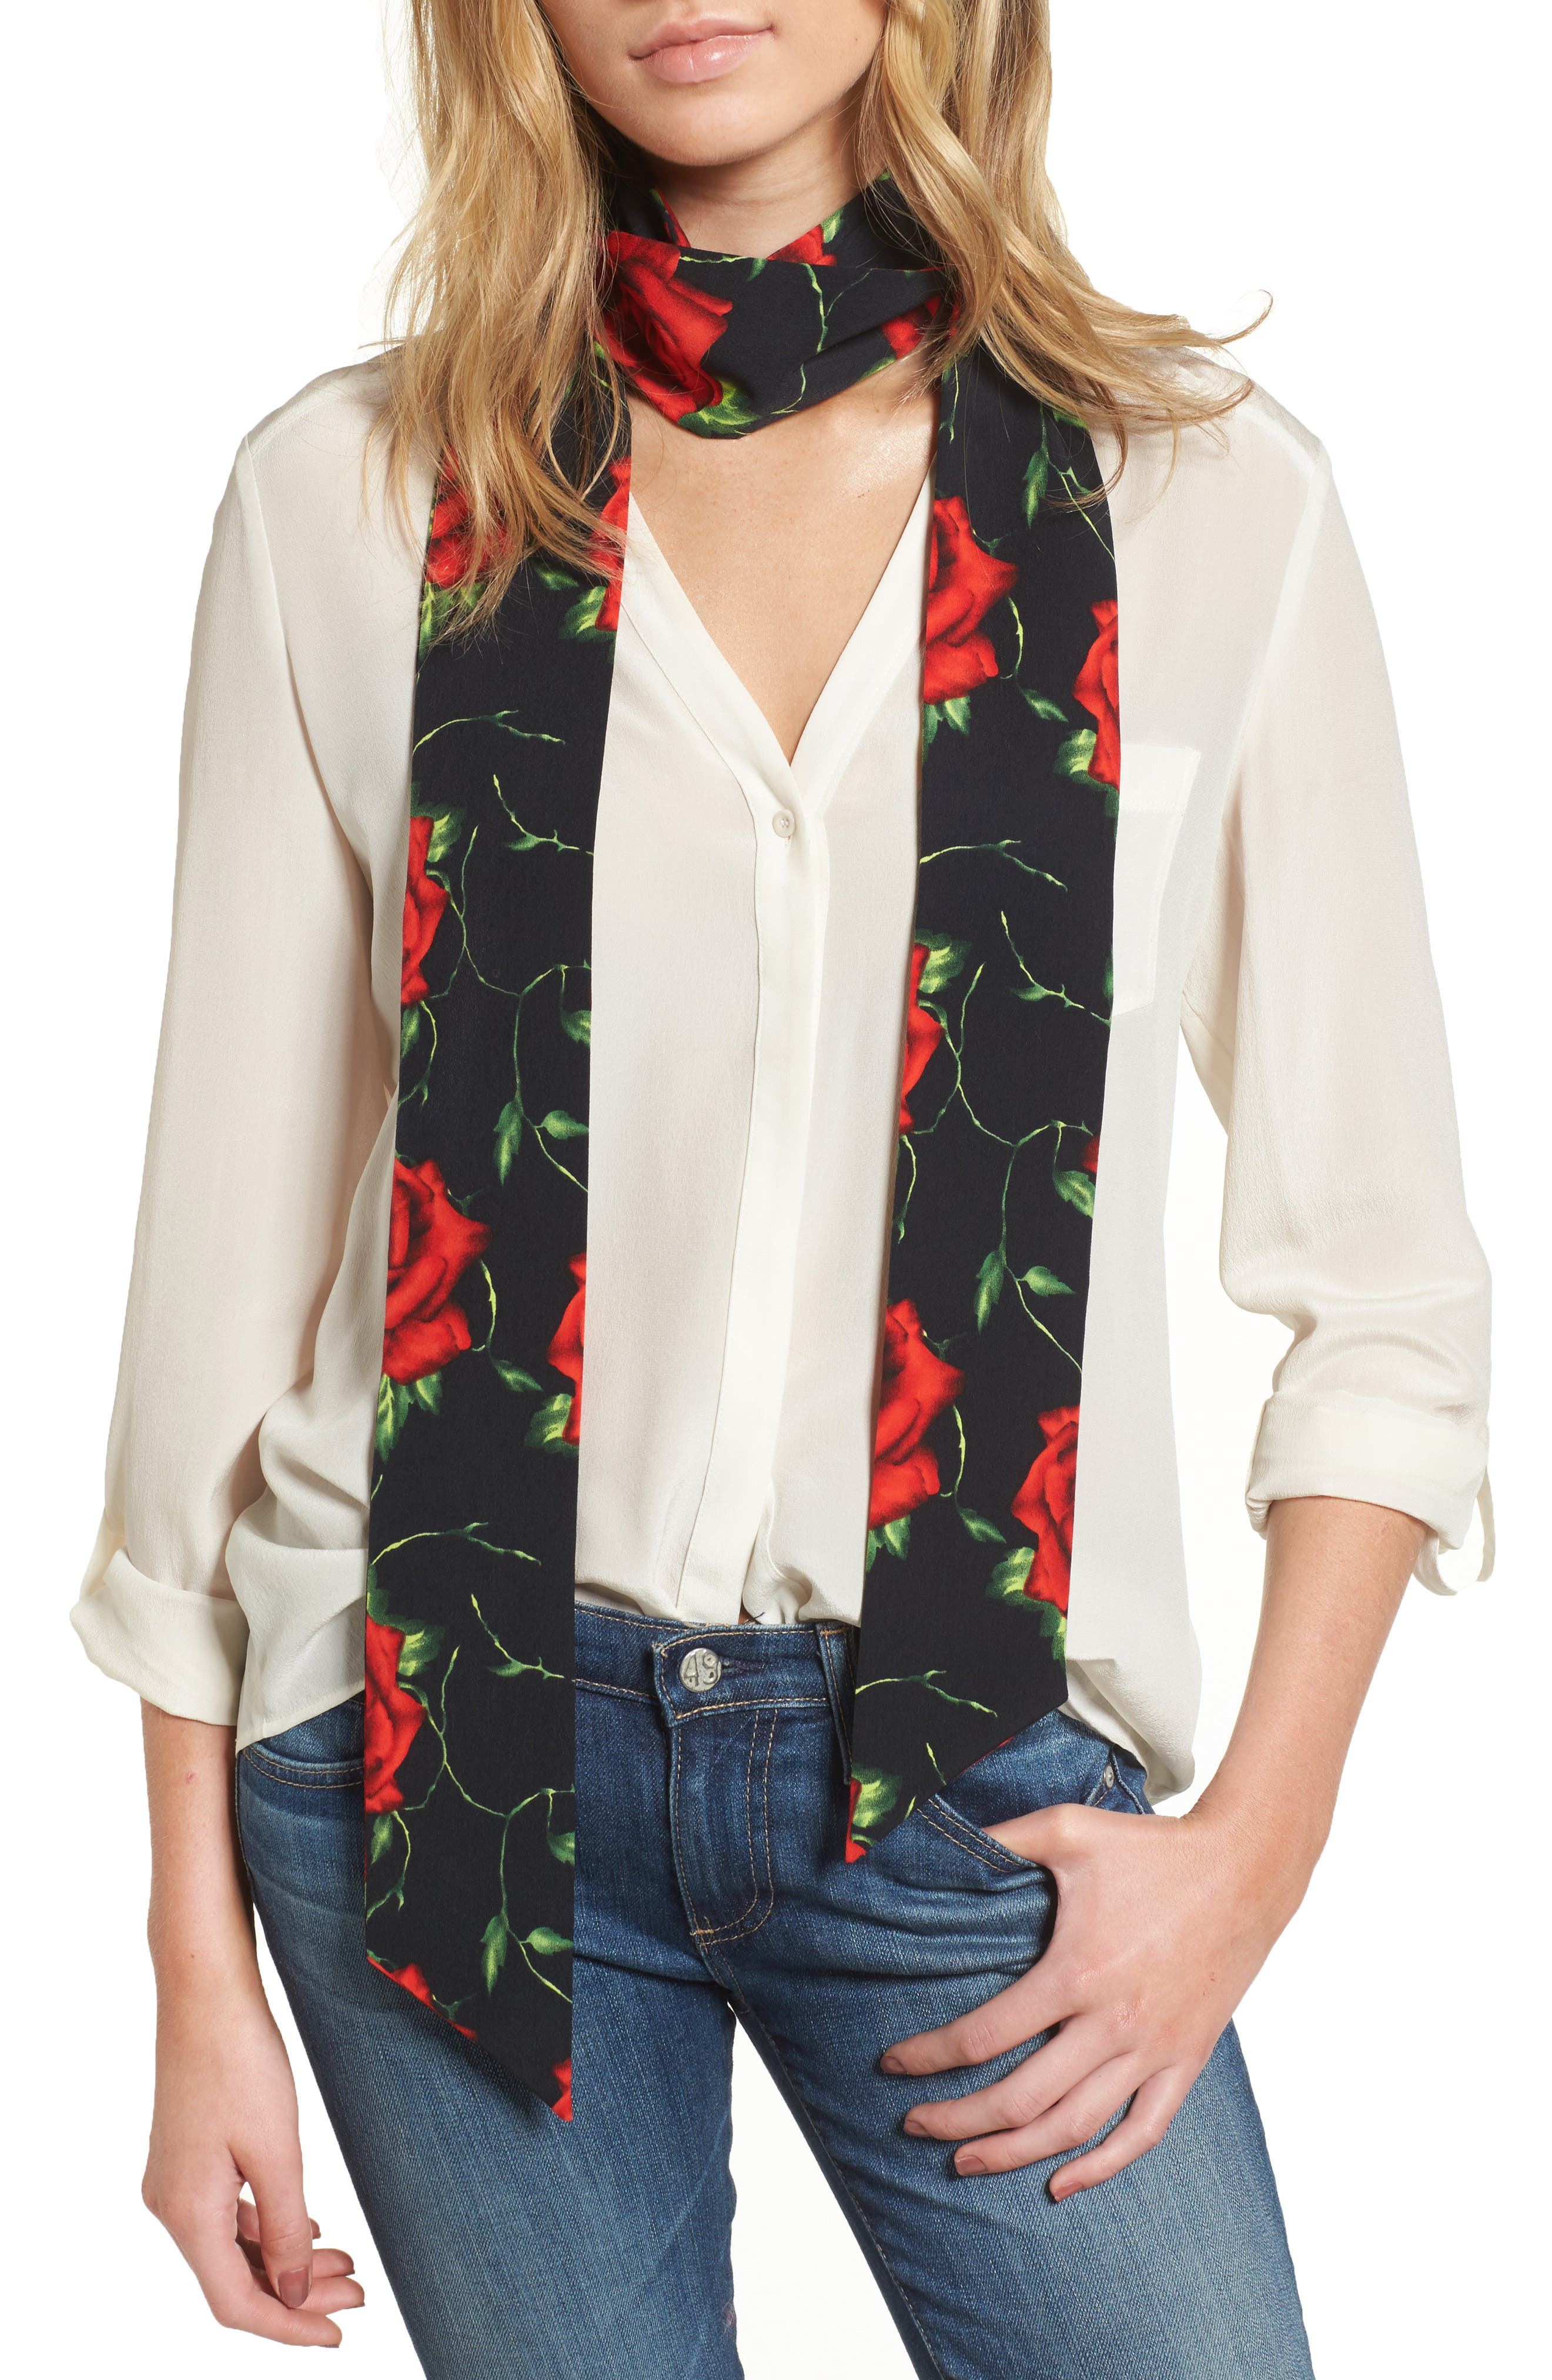 Rose Print Skinny Scarf,                             Main thumbnail 1, color,                             001